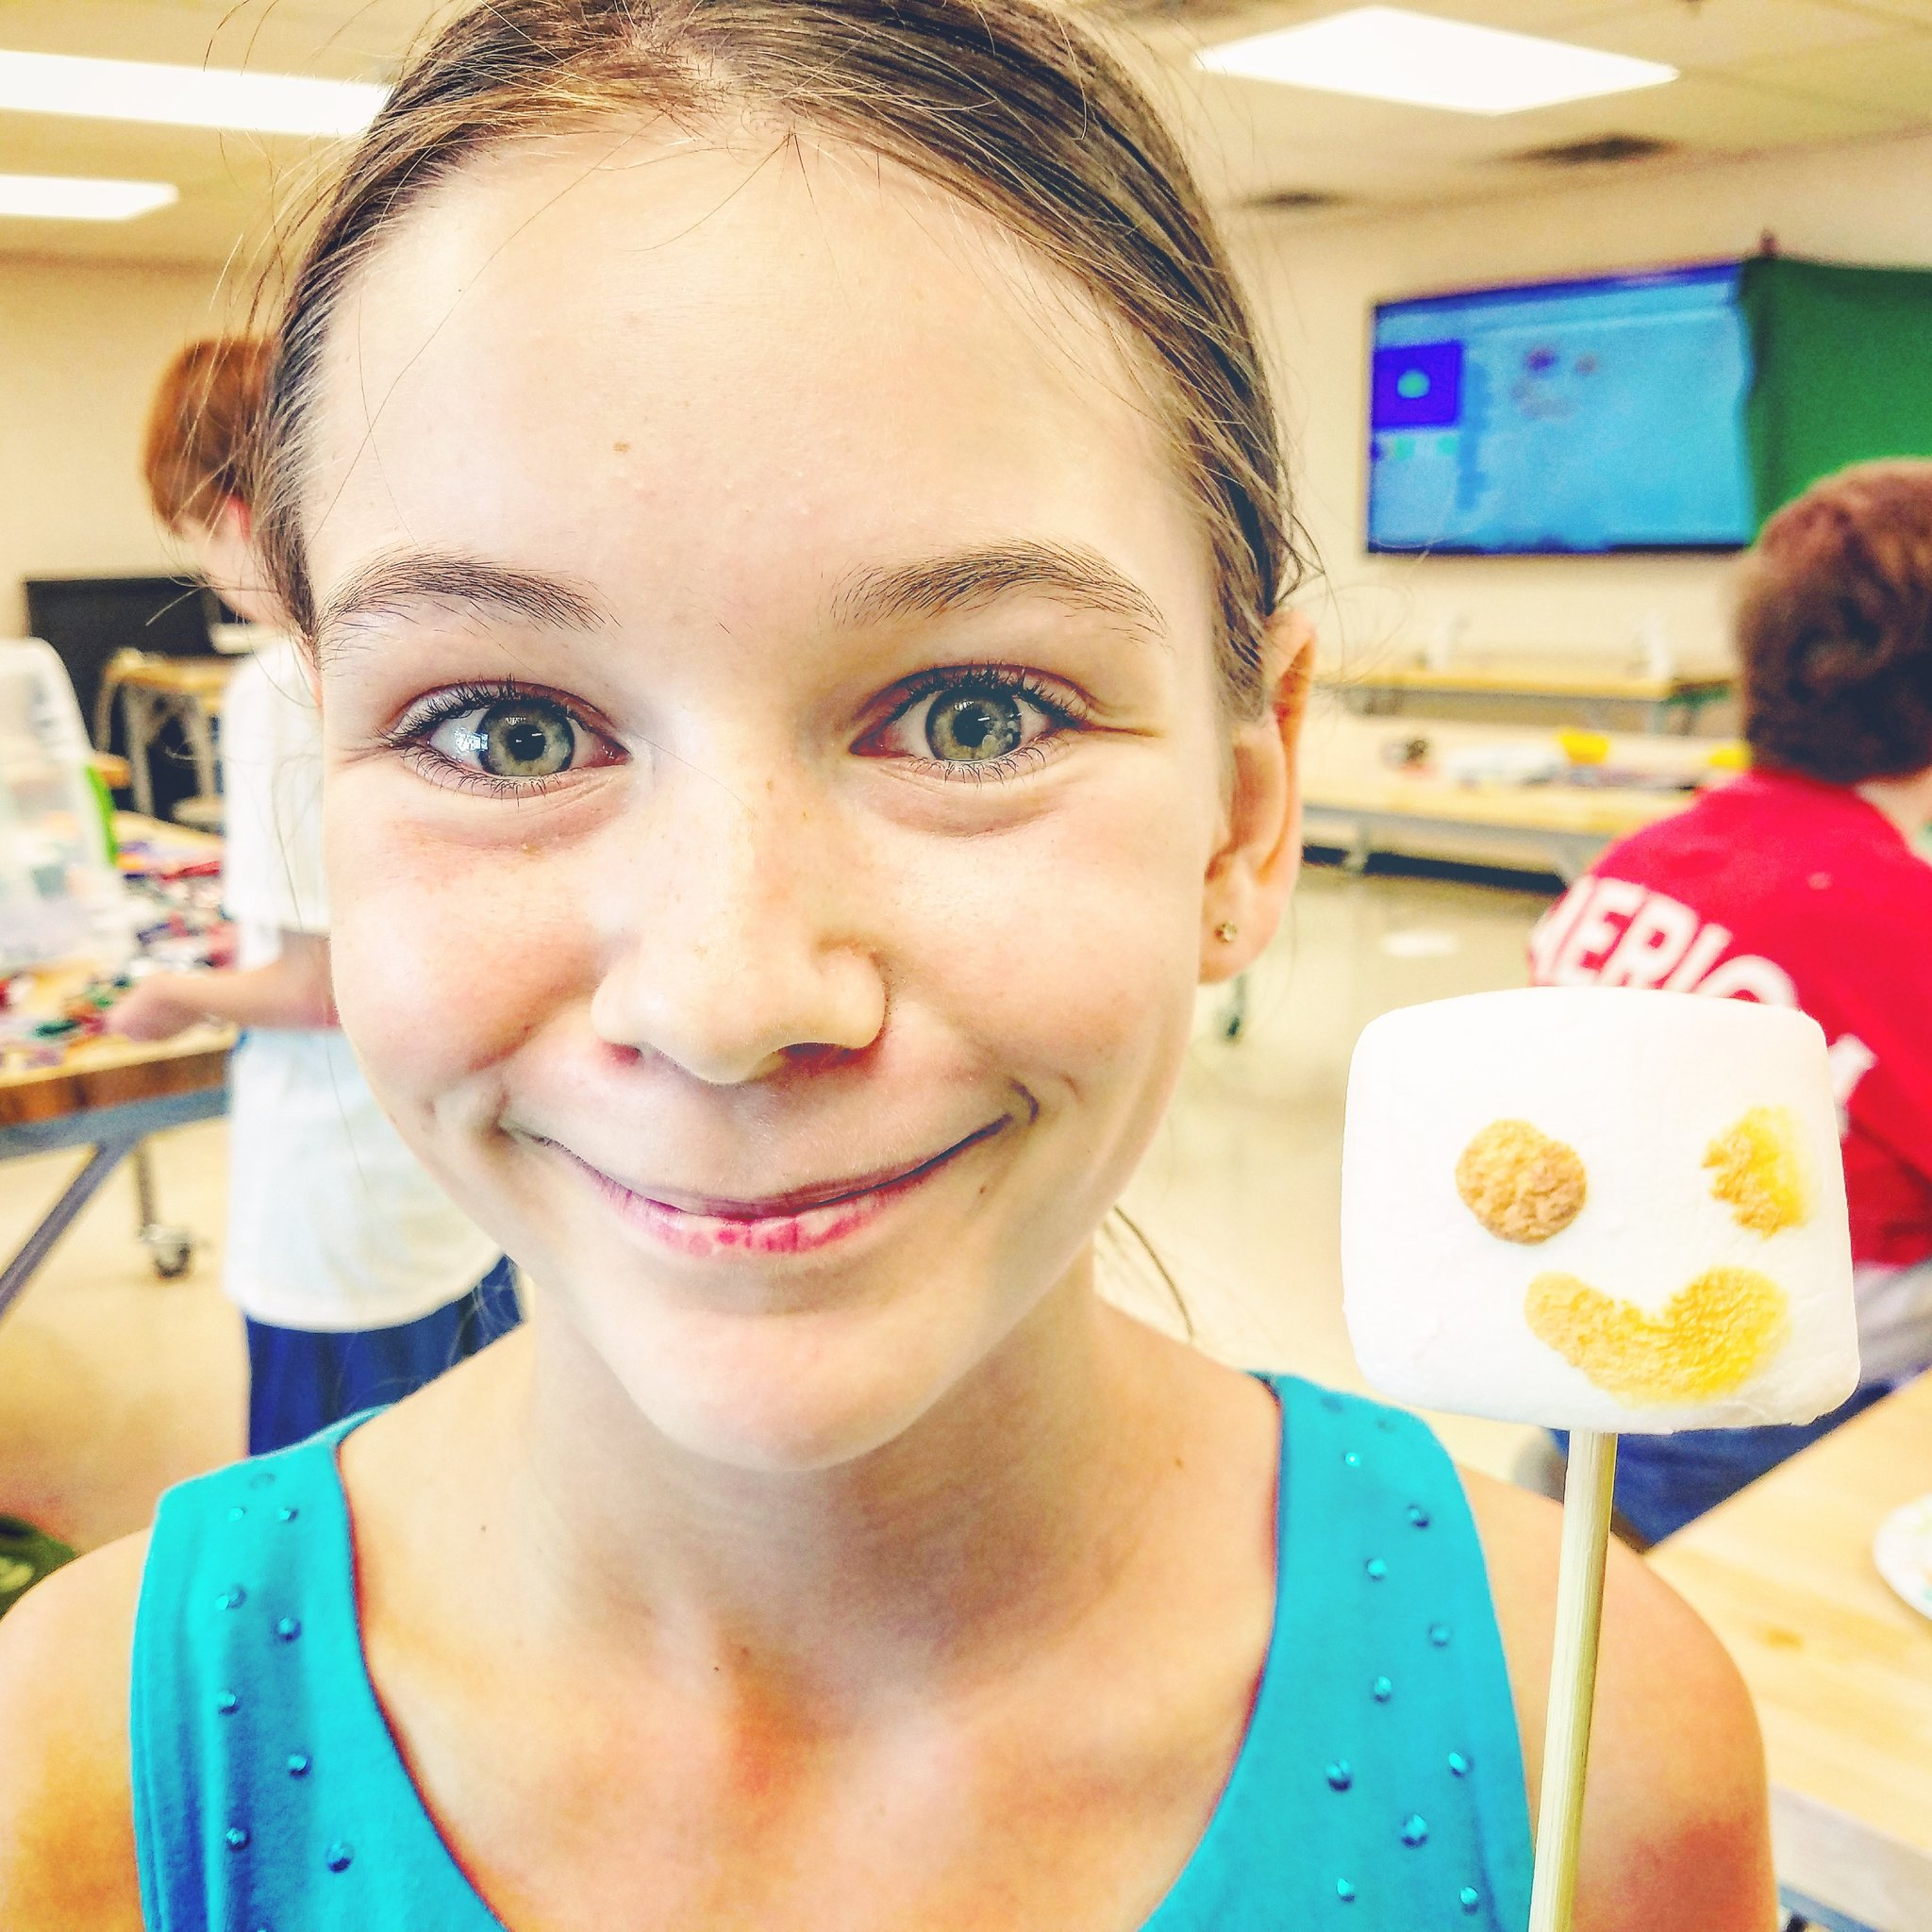 Check Out What the Maker Camp Community Is Building